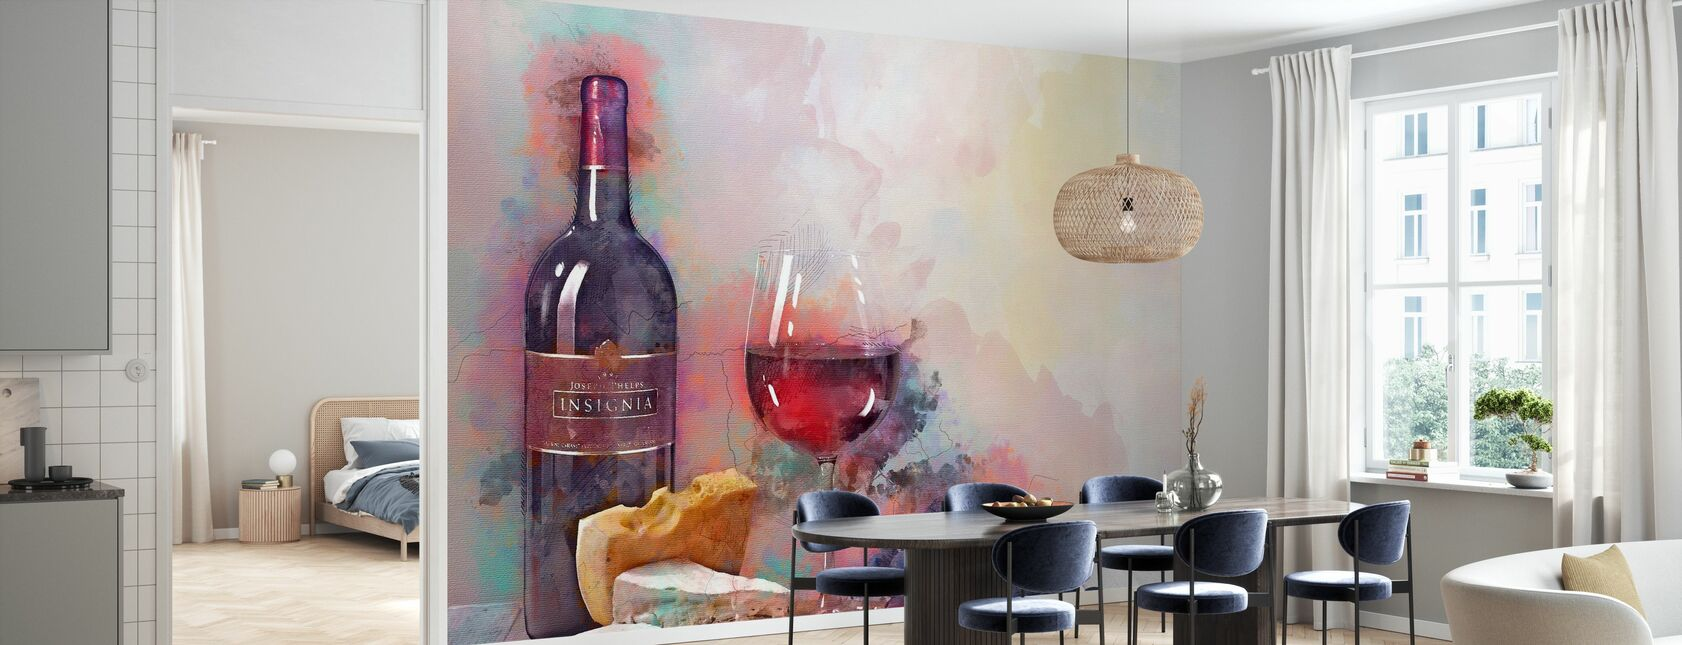 A Special Occasion - Wallpaper - Kitchen